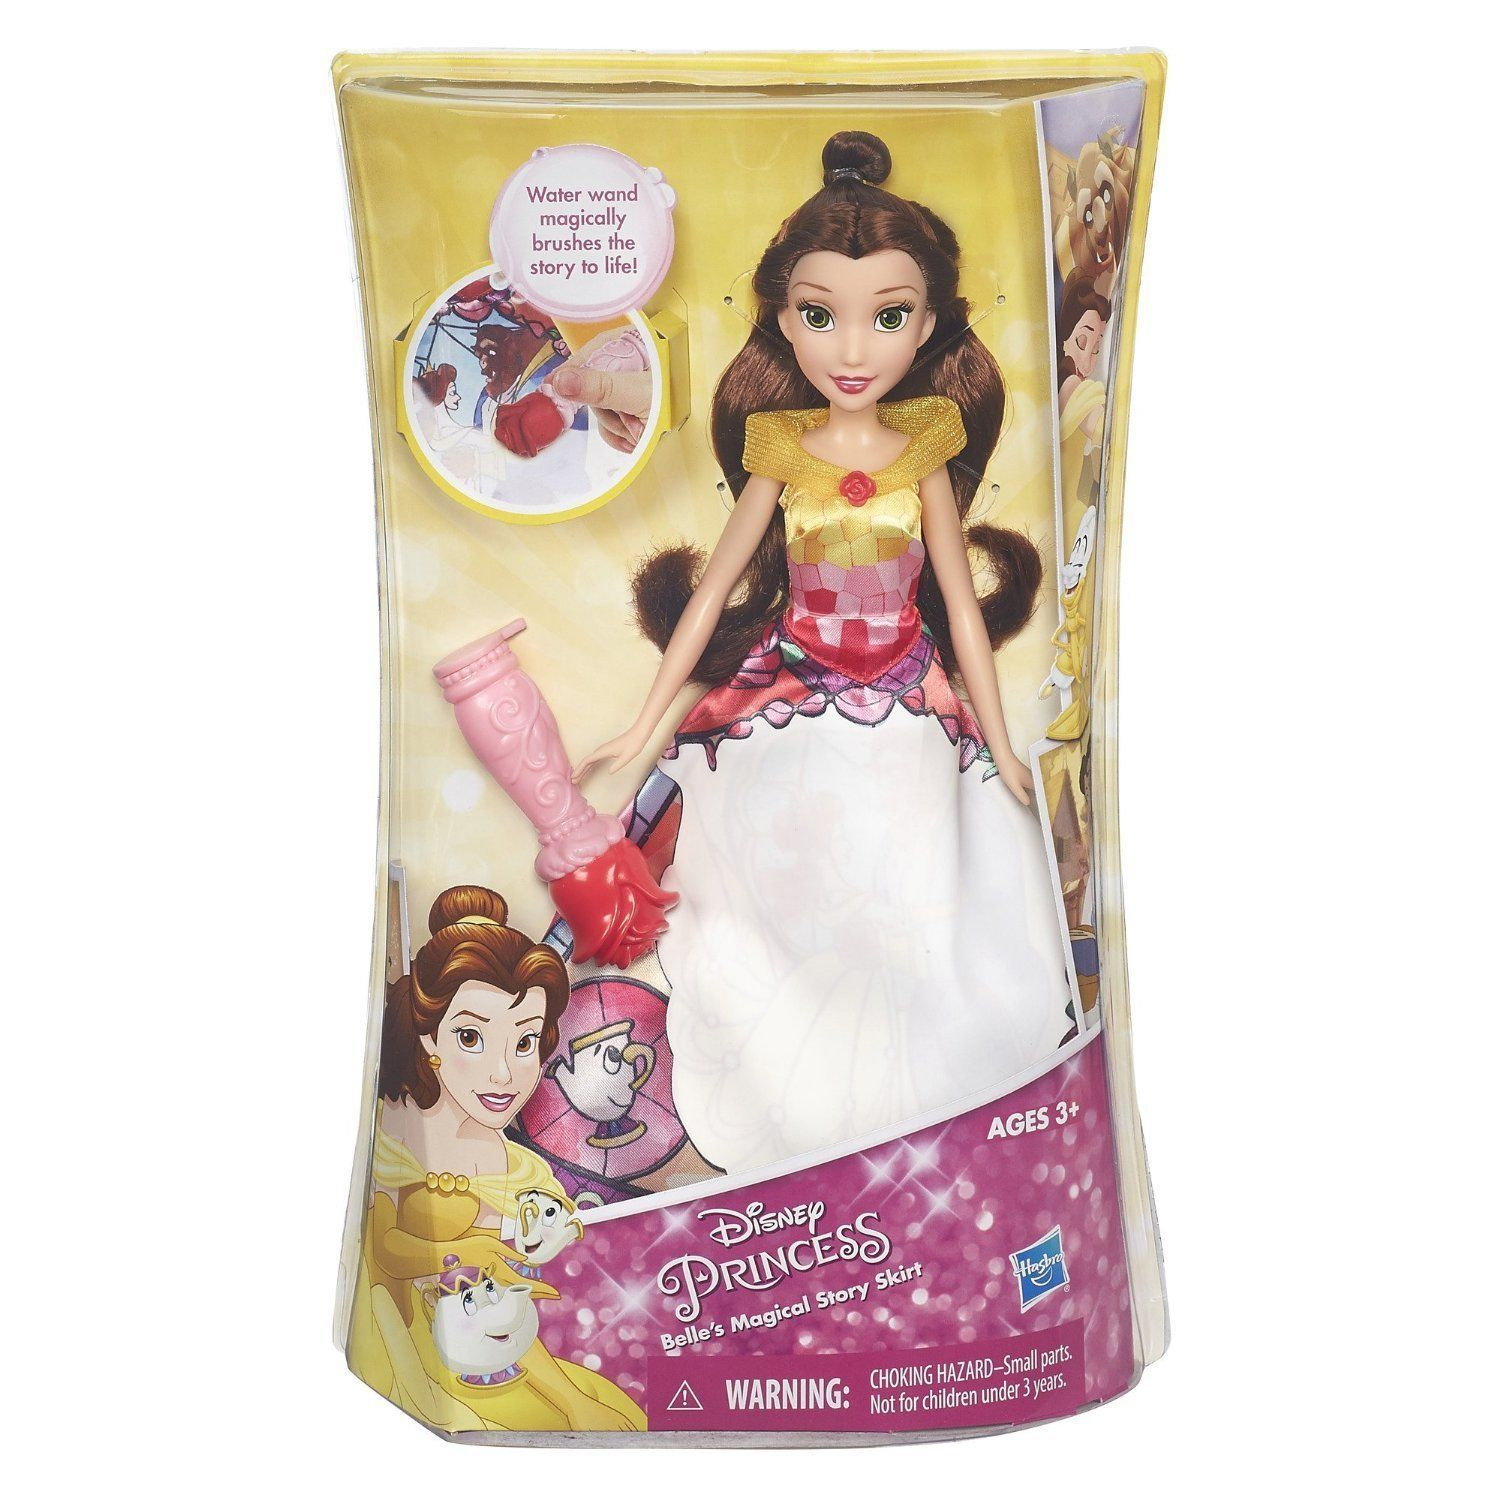 Image 2 of Disney Princess Belle's Magical Story Skirt Doll in Fuchsia/Yellow by Hasbro